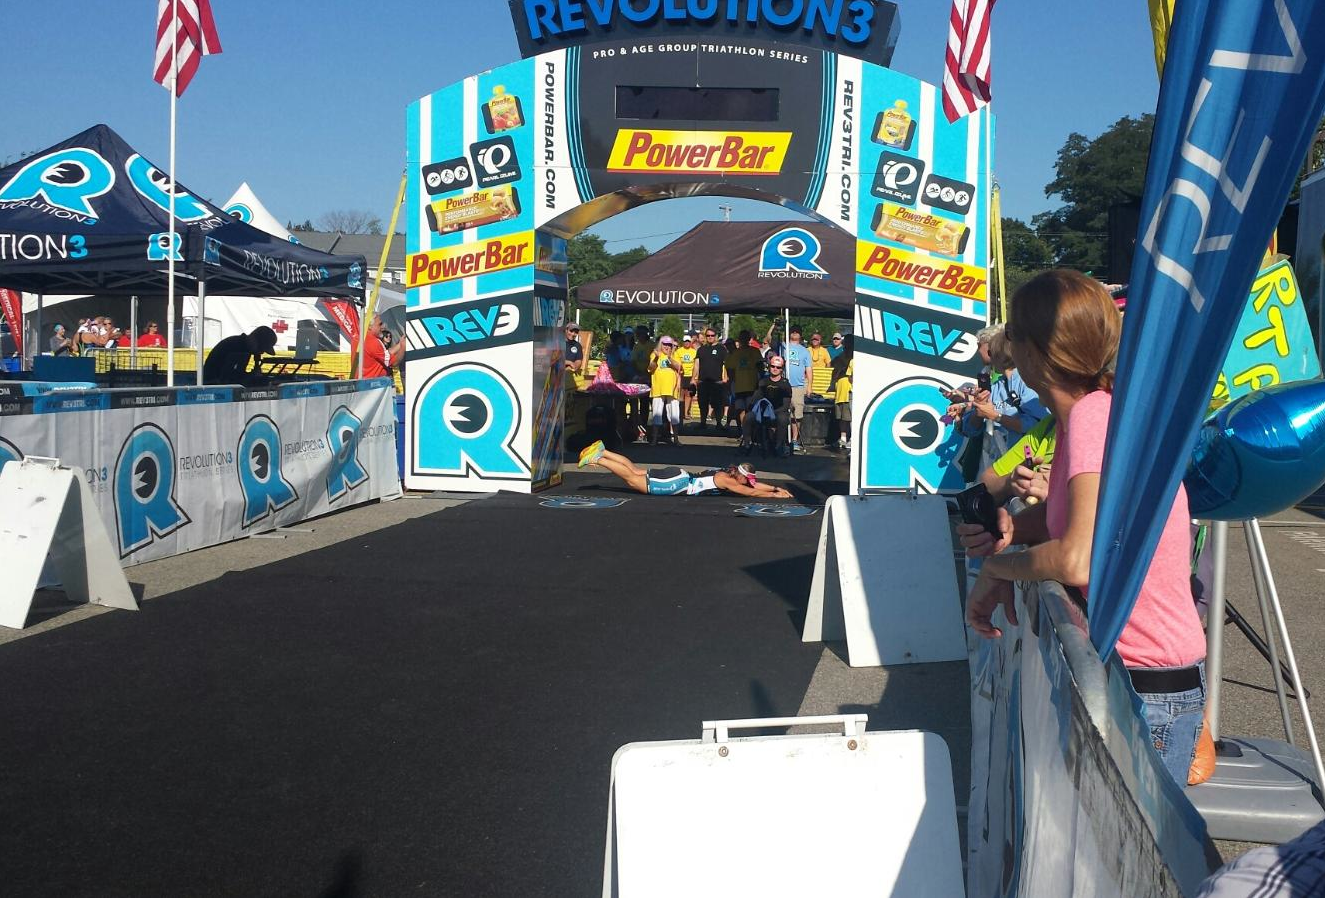 """Triathlete Jen Small does the """"Blazeman Roll"""" across the finish line at the REV3 Triathlon in Old Orchard Beach, ME, August 24, 2014."""